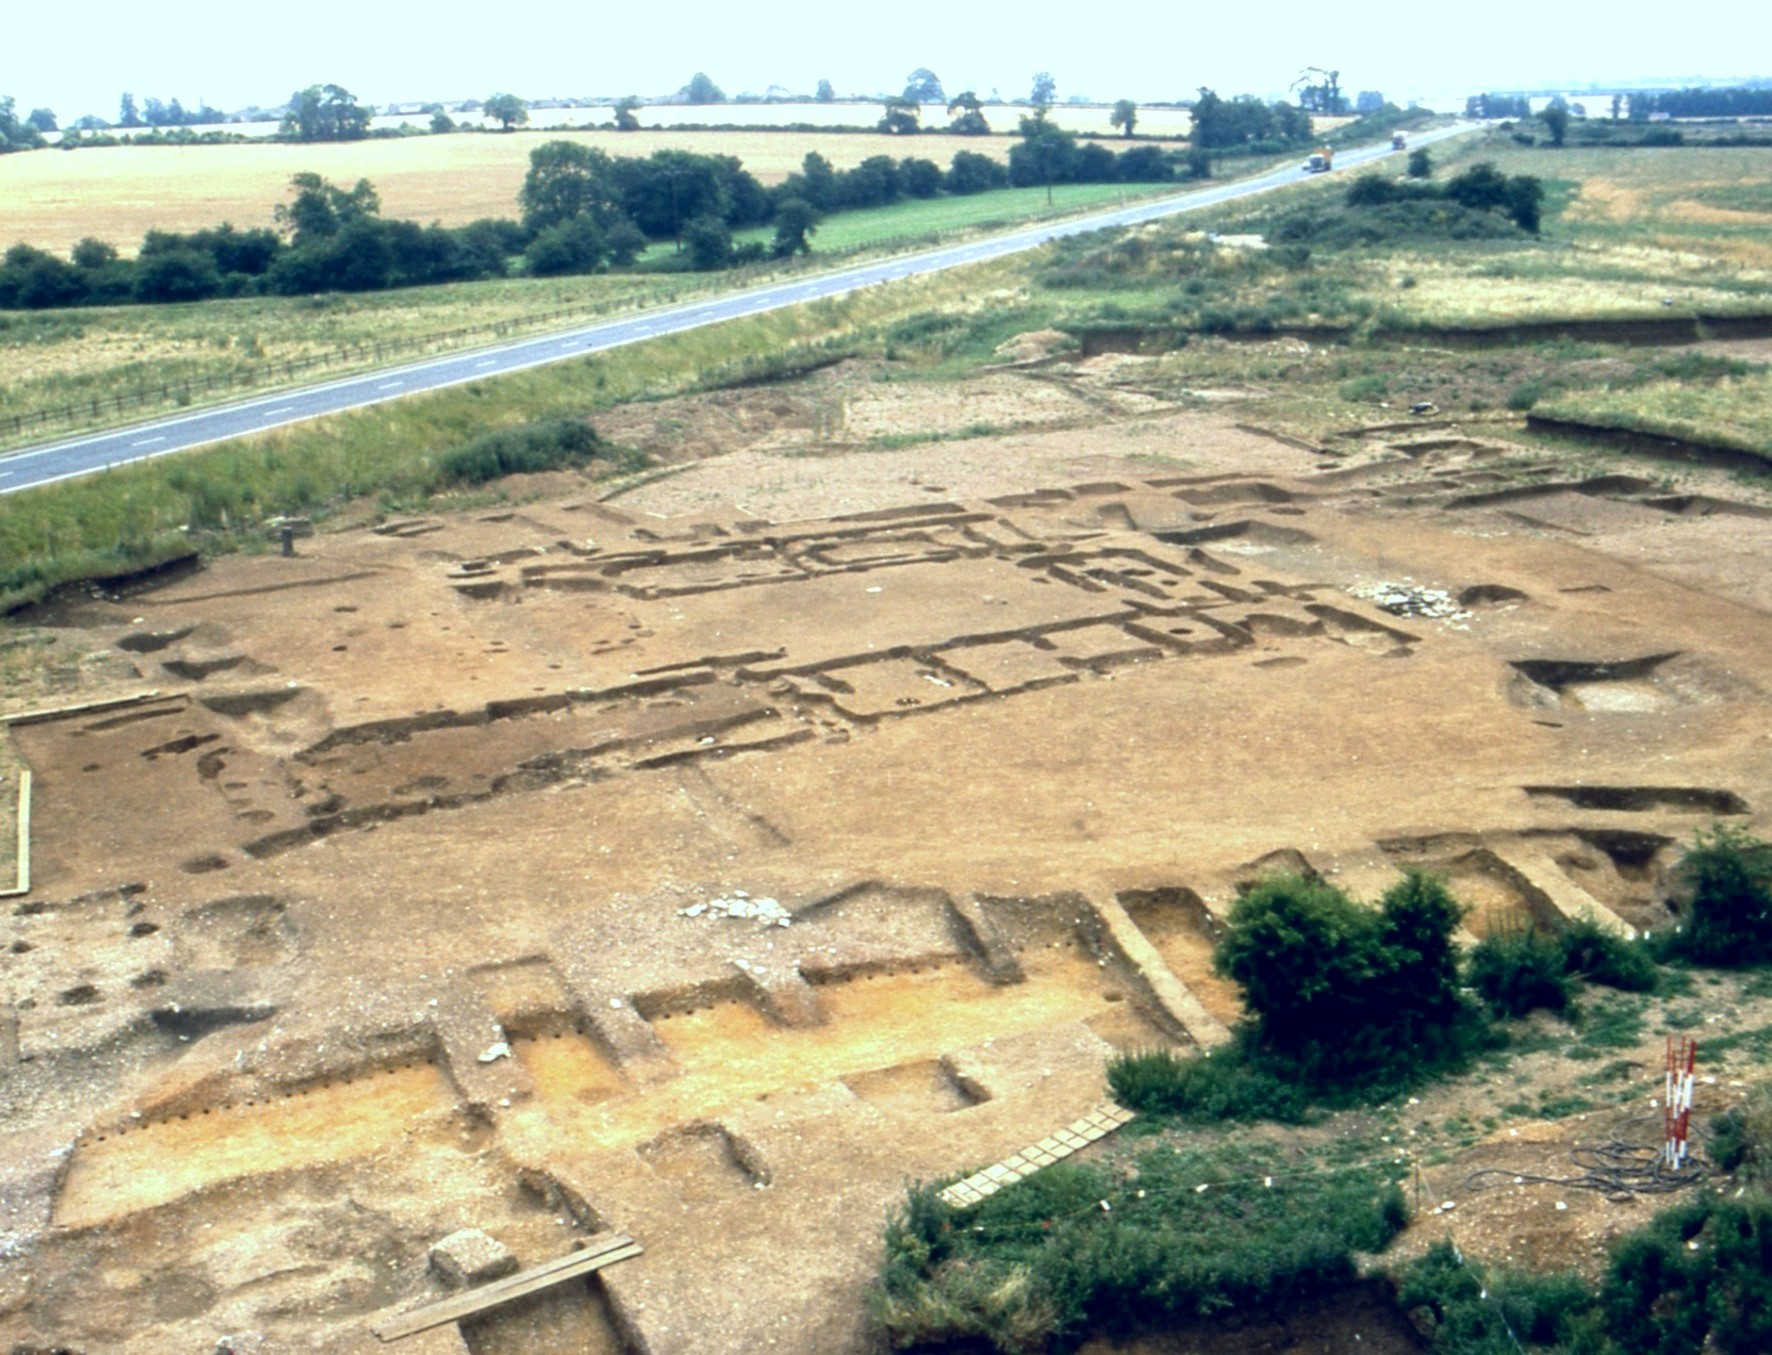 A photograph of a very large archaeological excavation, showing large and complex rectilinear structures following the floorplan of a large building.